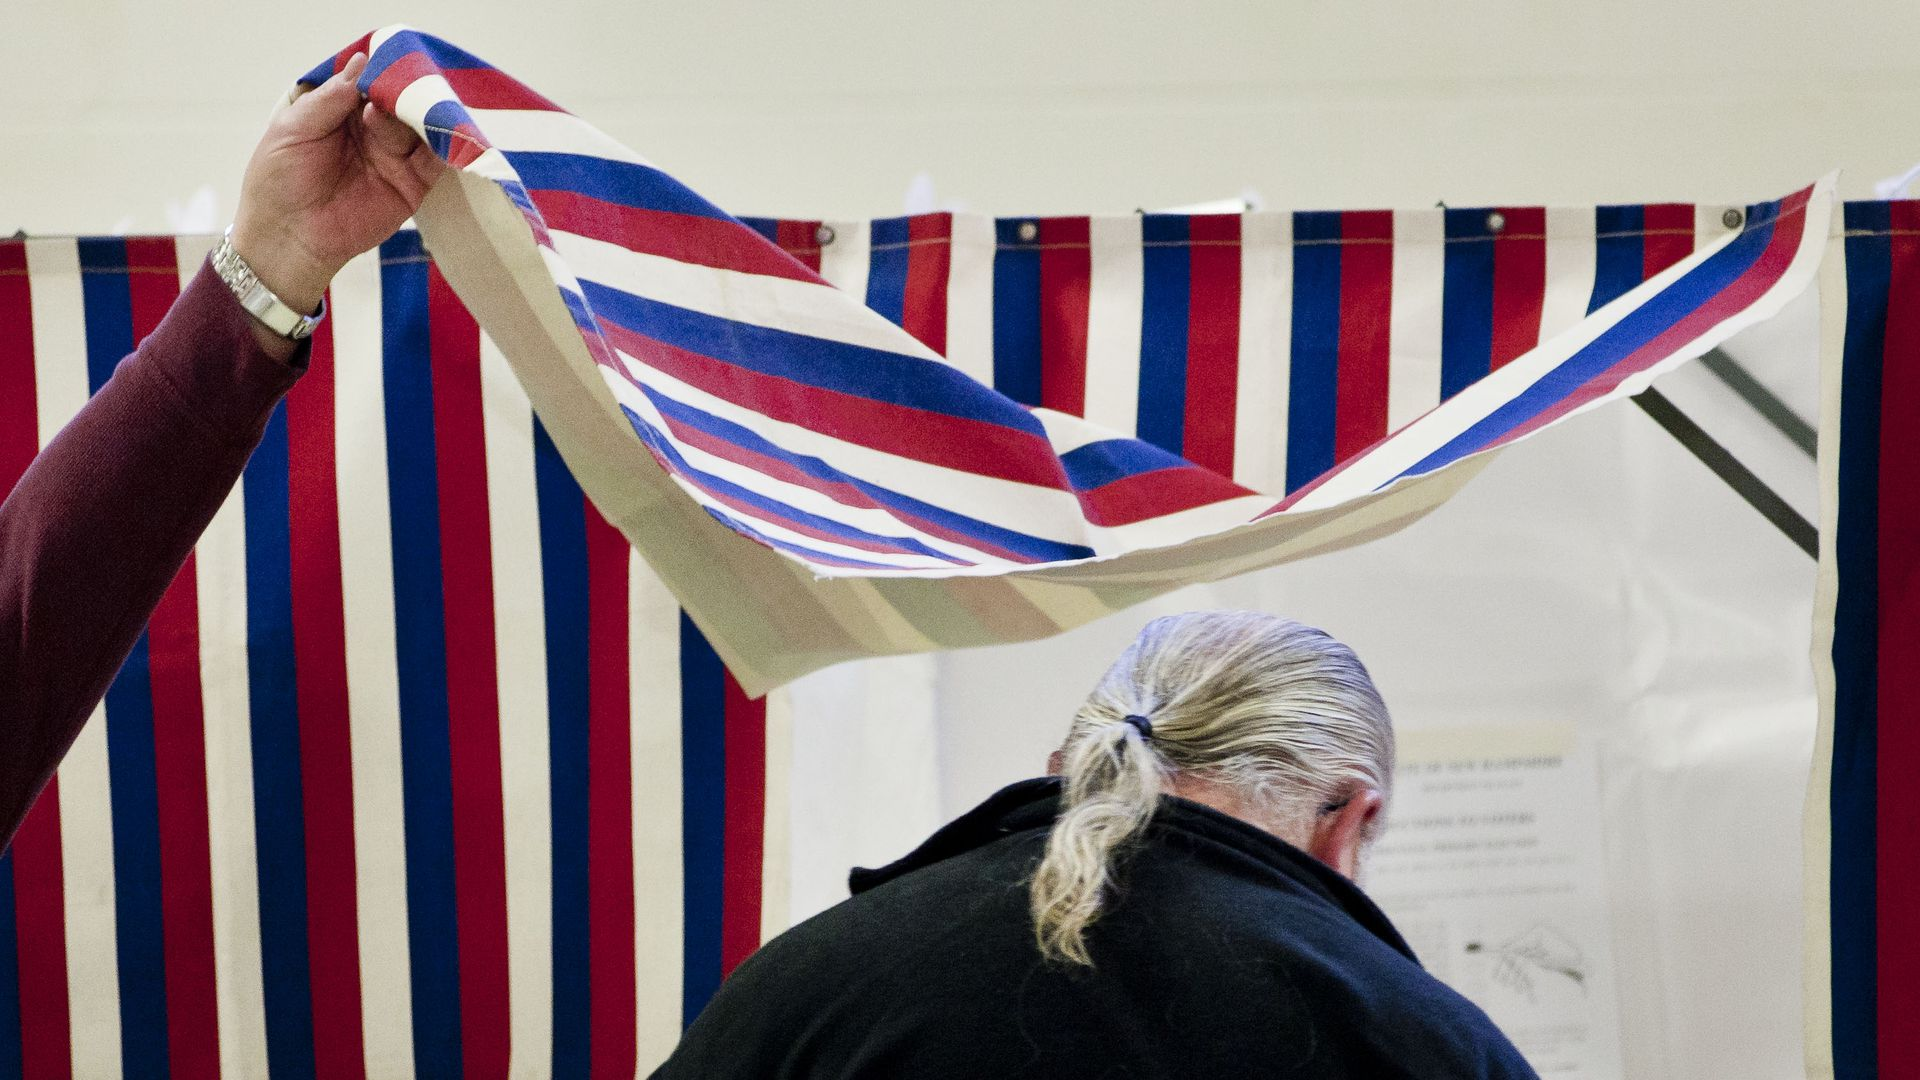 Someone lifts the red, white, and blue curtain as a man enters a polling booth